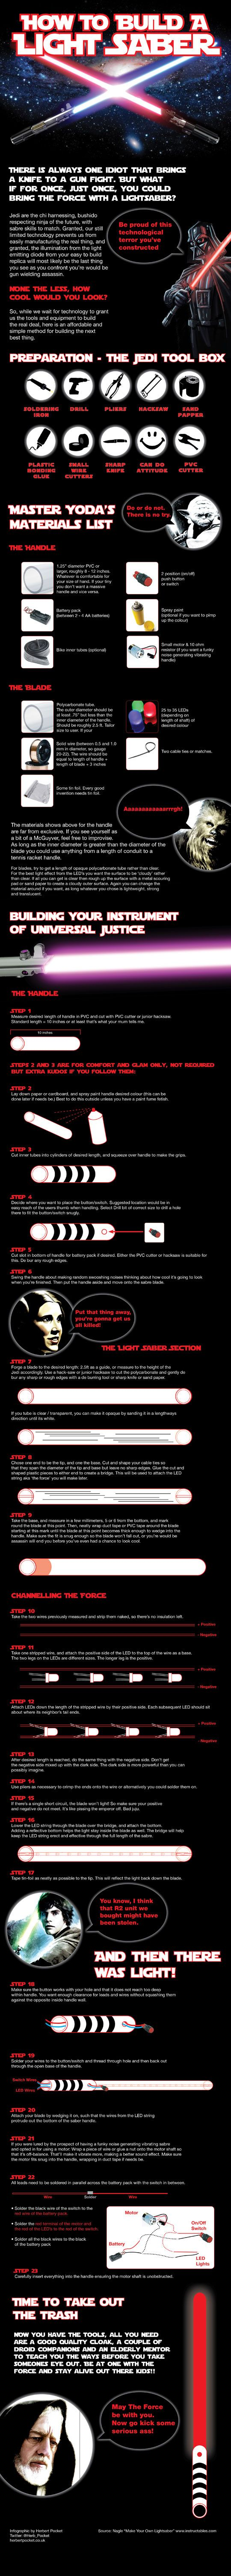 Infographic: How To Build A DIY Lightsaber